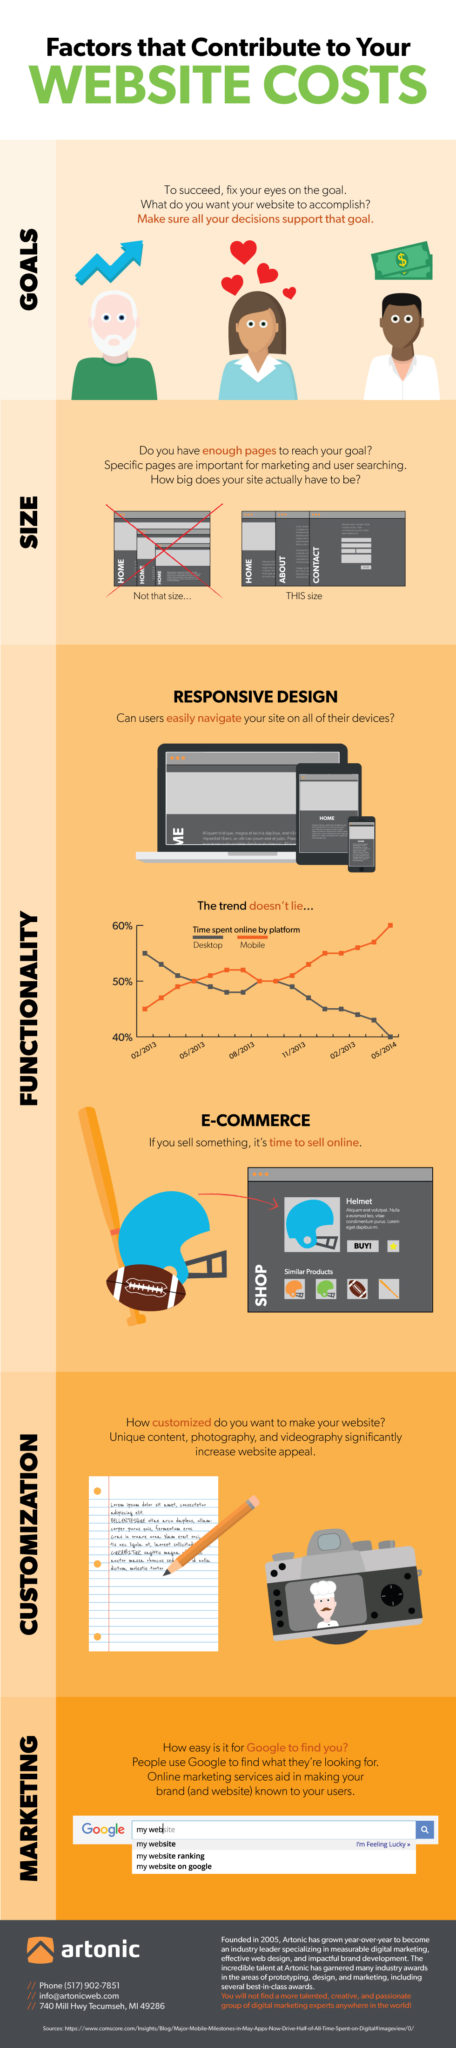 website-cost-infographic-980